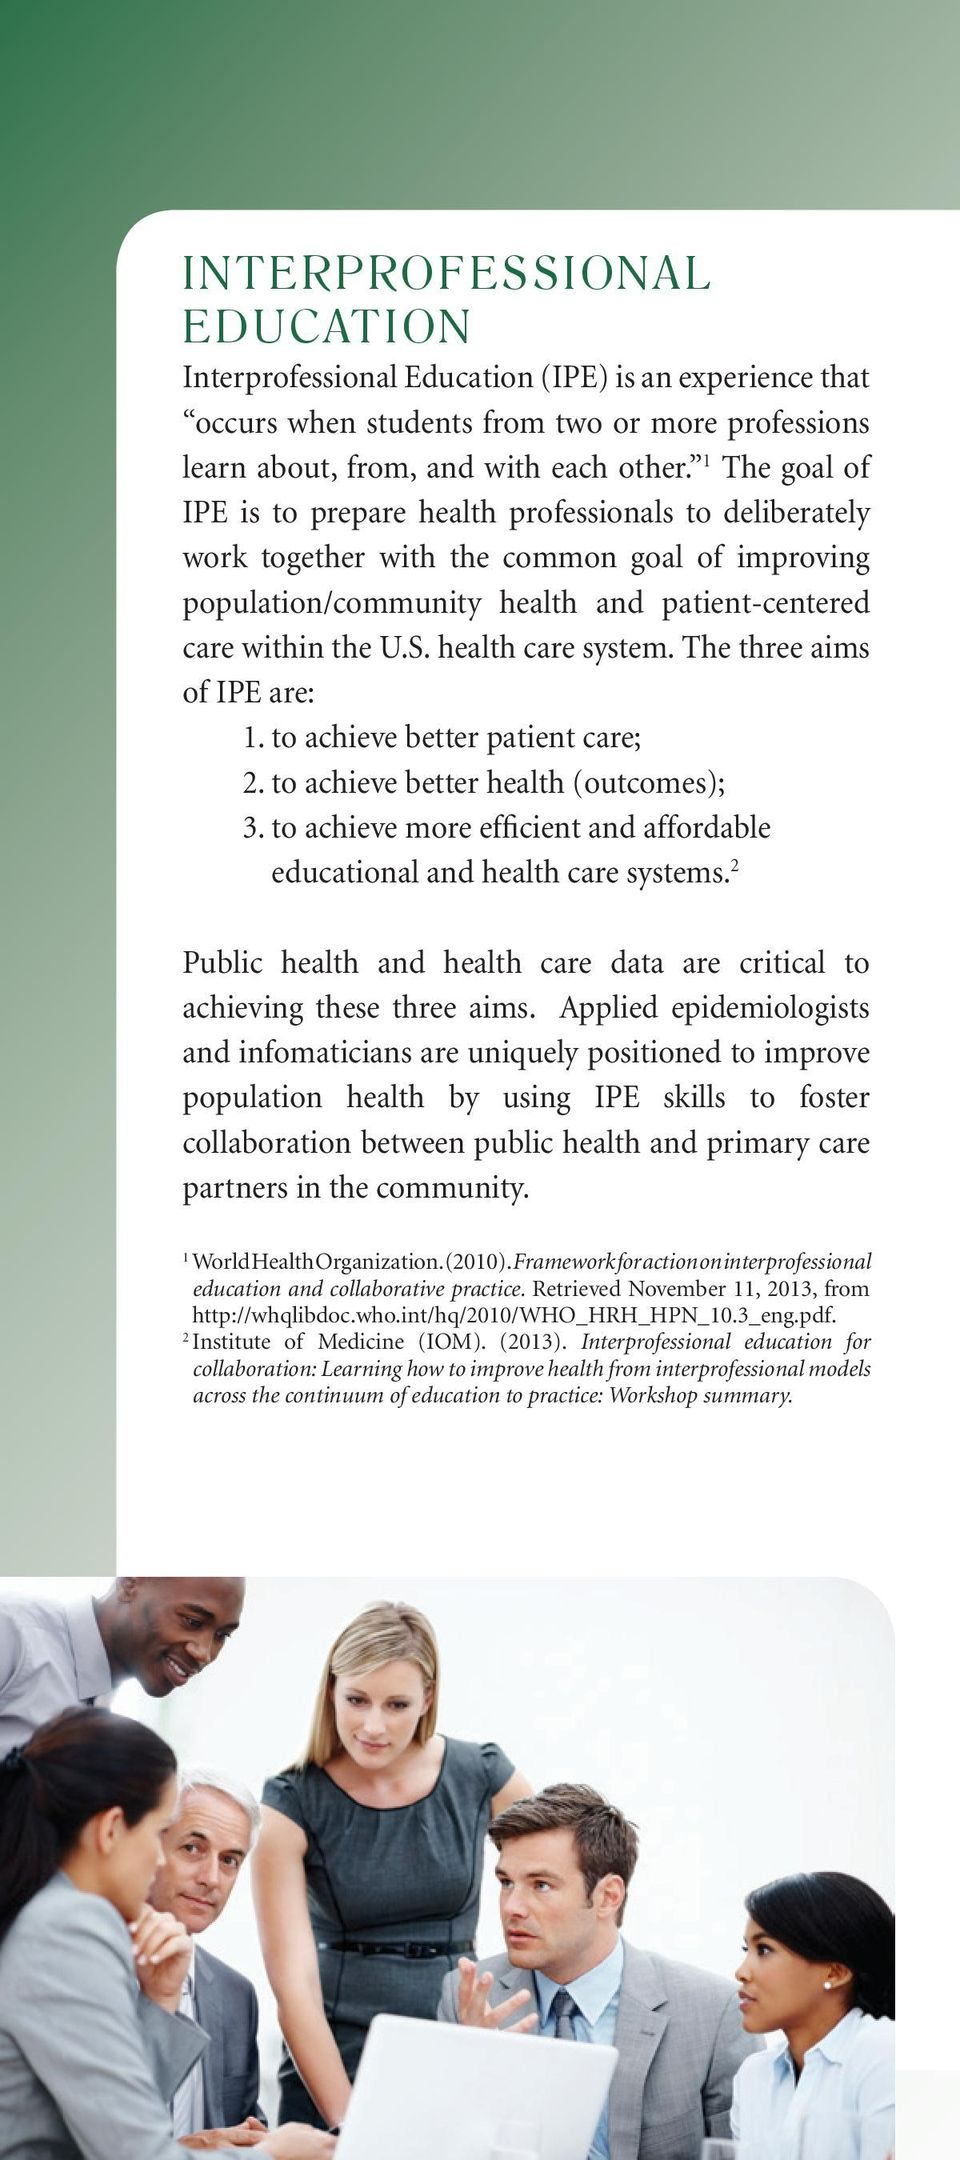 health care system. The three aims of IPE are: 1. to achieve better patient care; 2. to achieve better health (outcomes); 3.